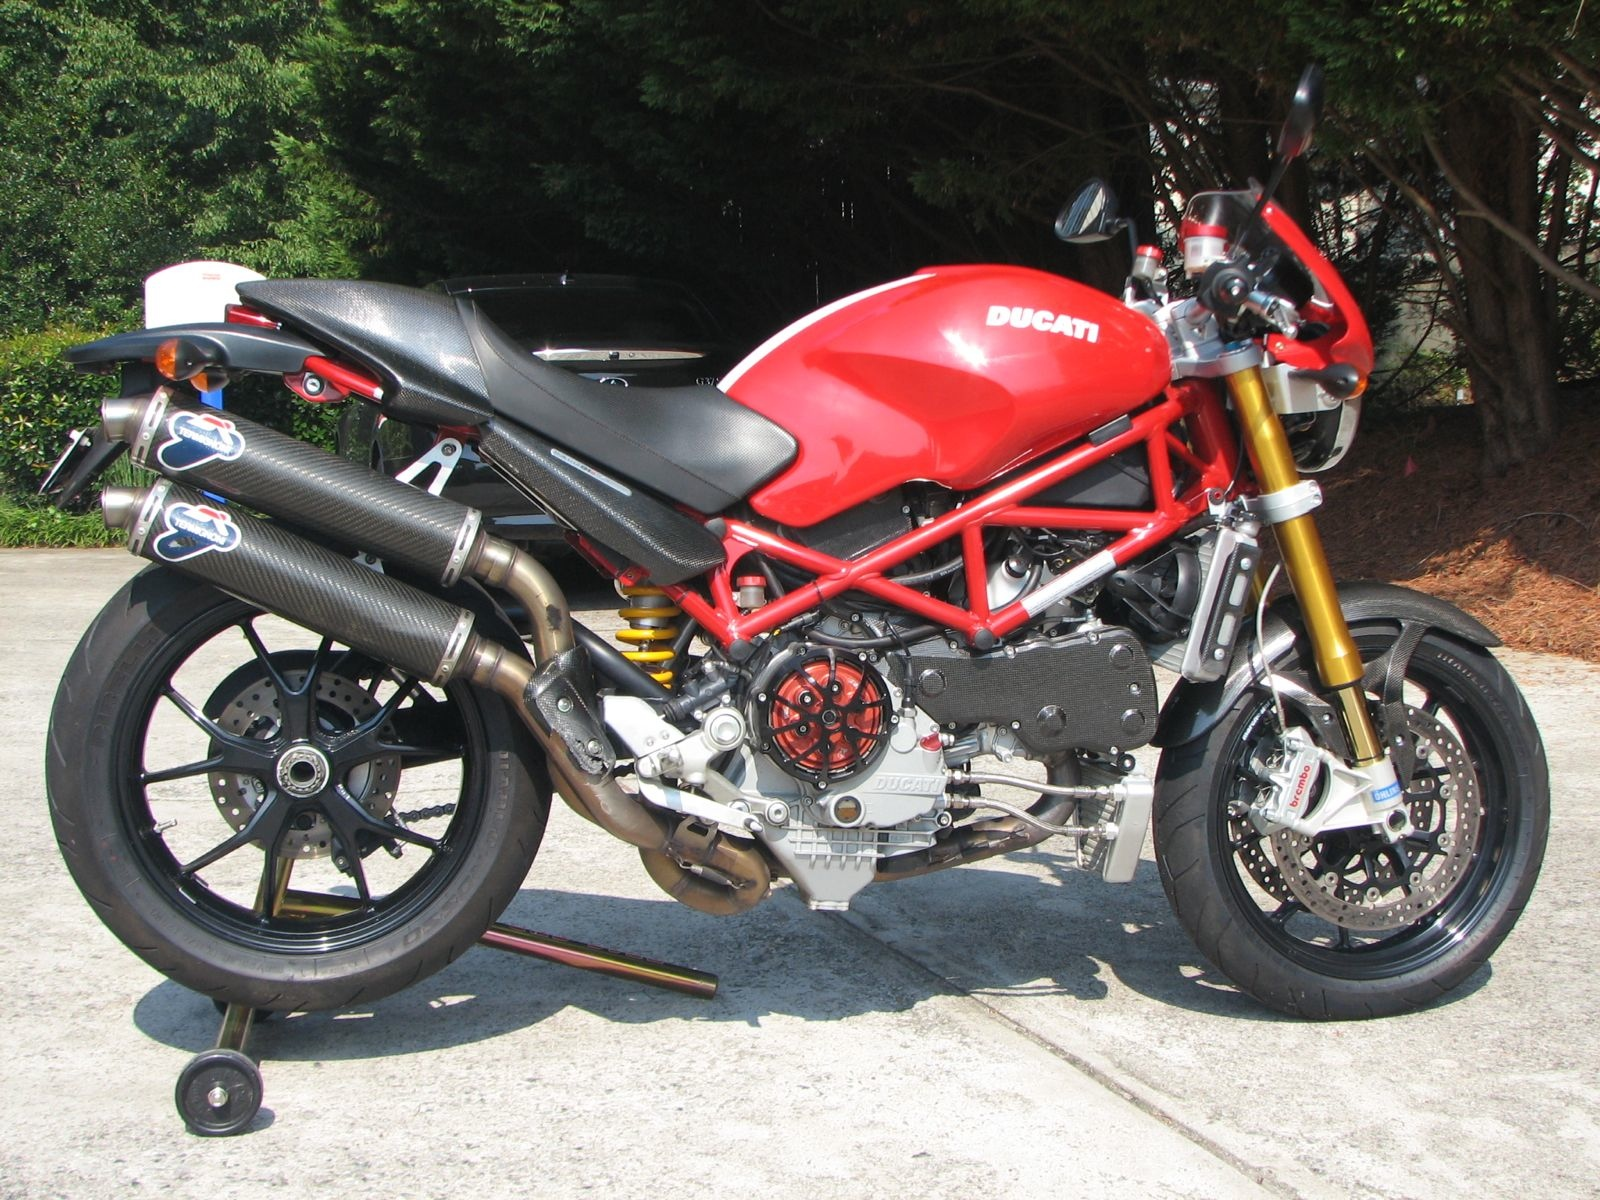 Ducati monster photo - 4